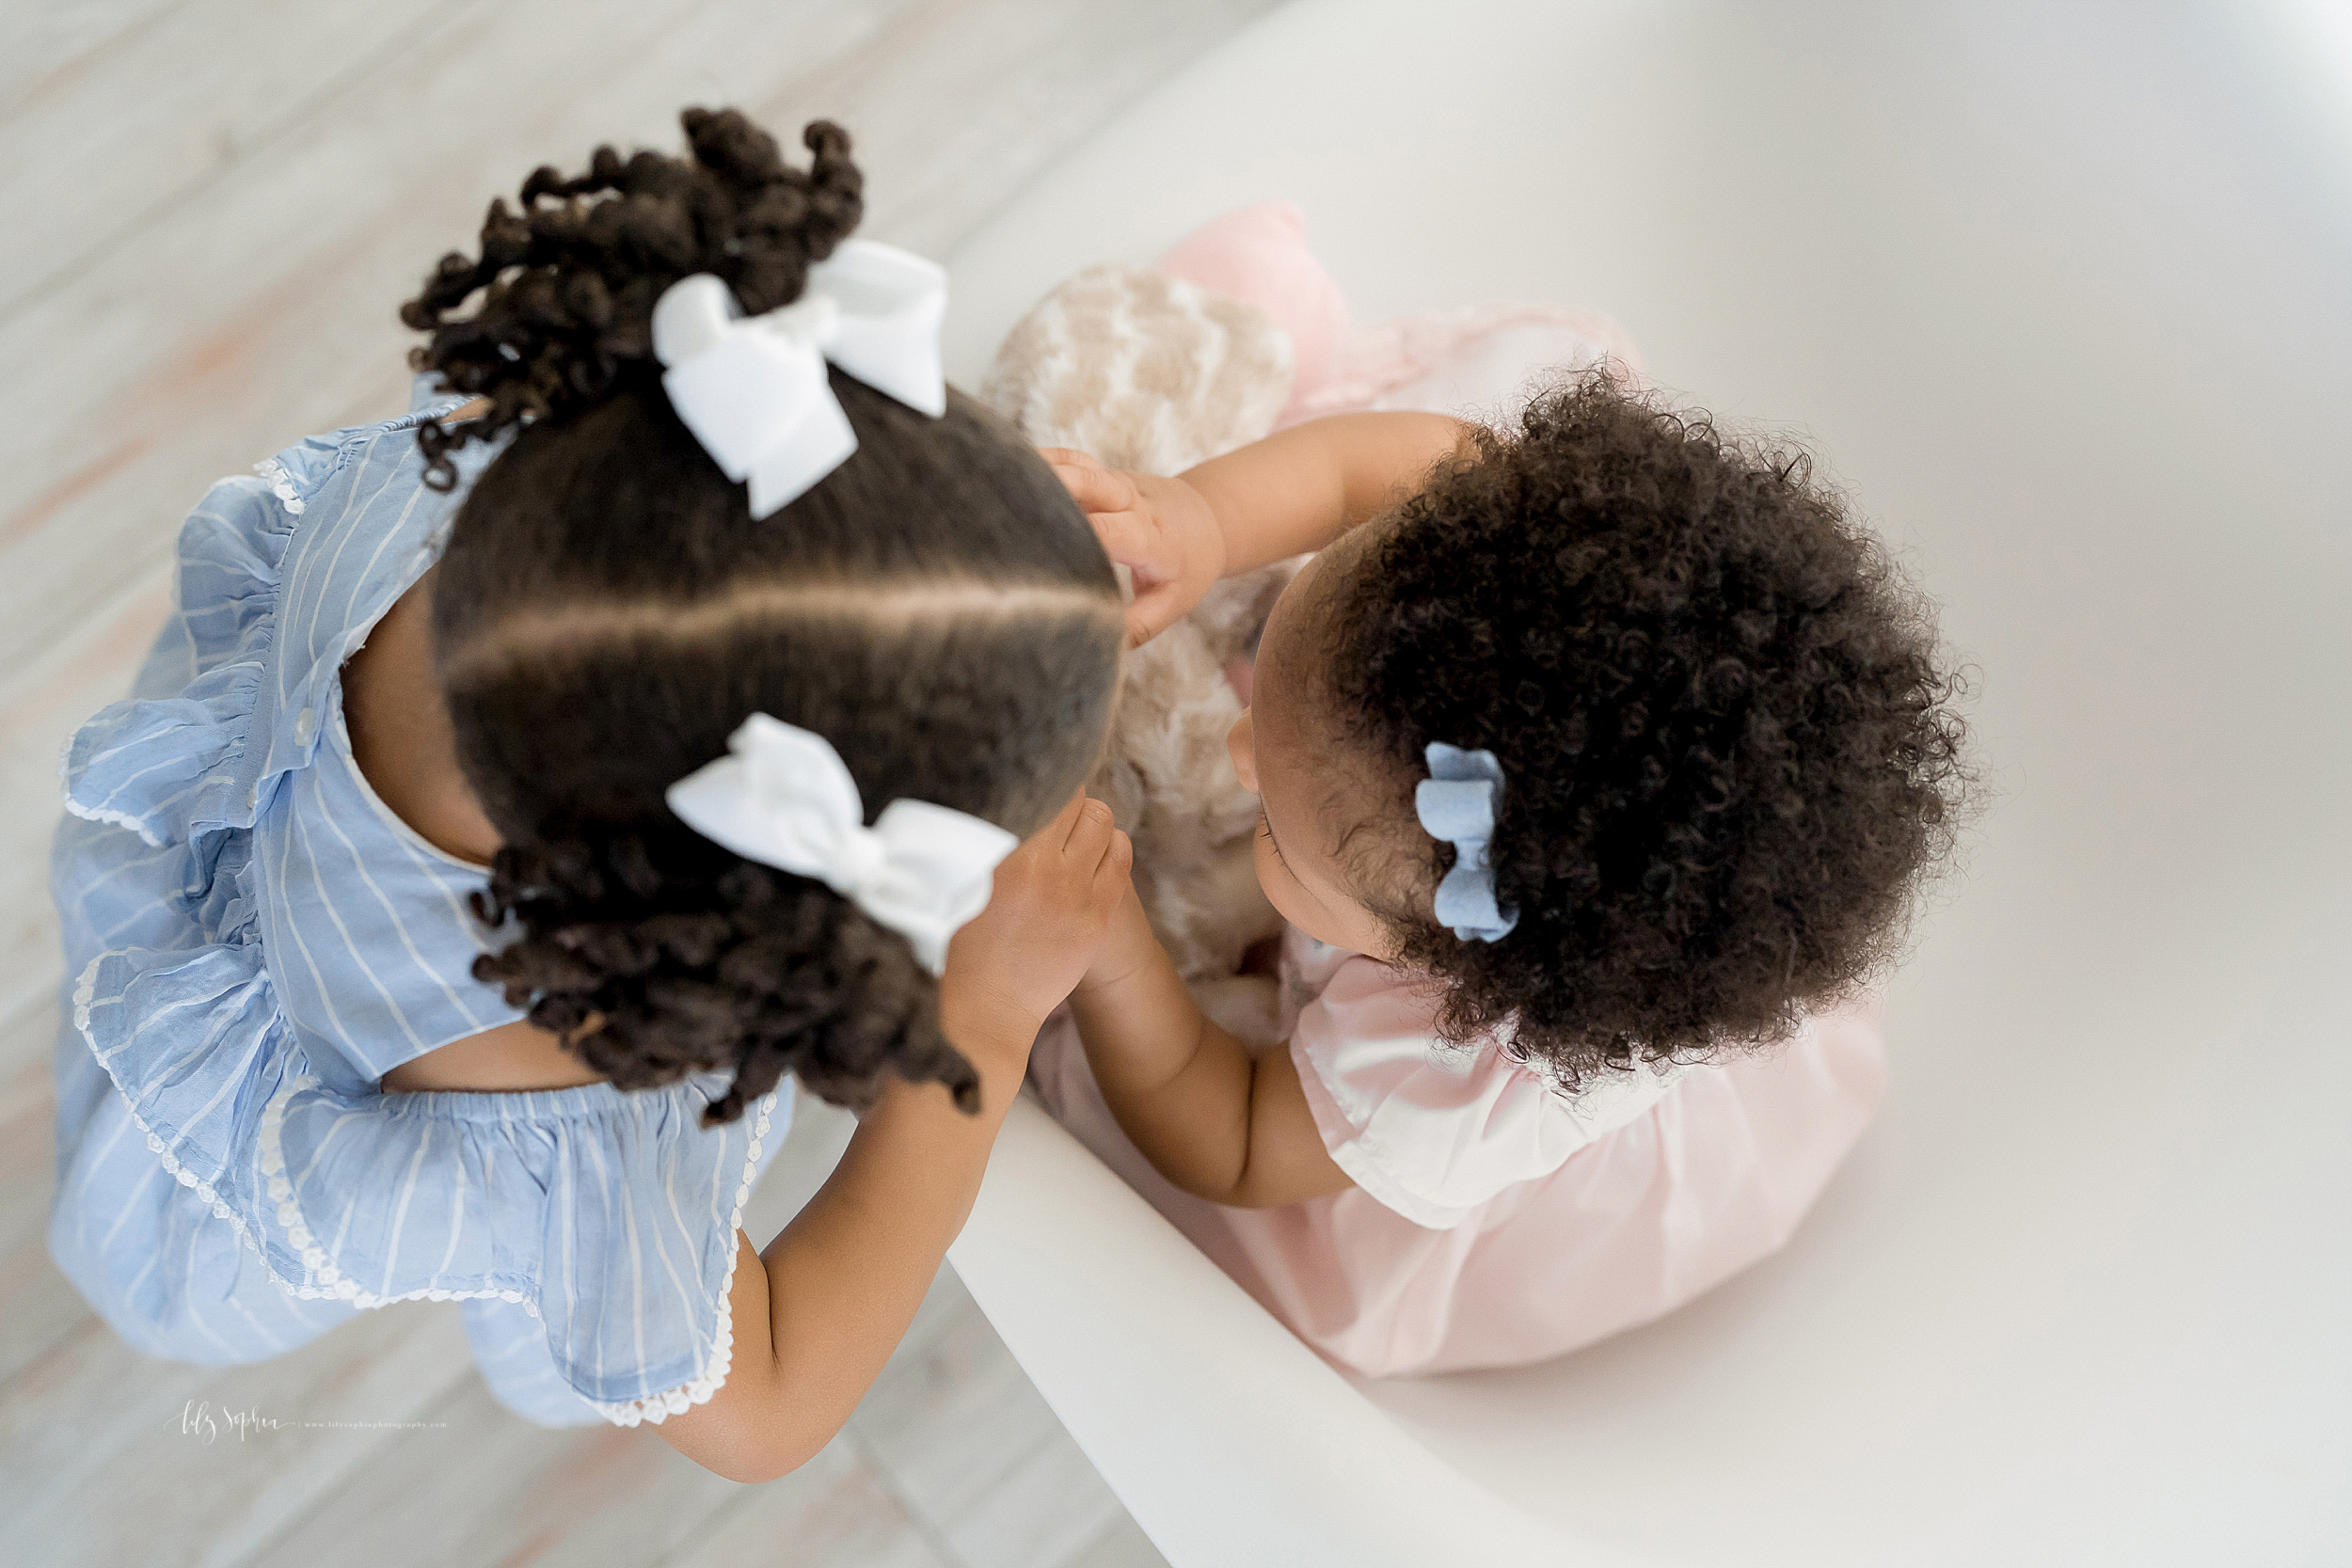 Image of an aerial view of two African-American little girls.  The younger girl is sitting in a modern molded white chair and her sister is standing next to the right side of the chair.  The girls are holding each other's hands.  The image shows the bows in their curly black hair.